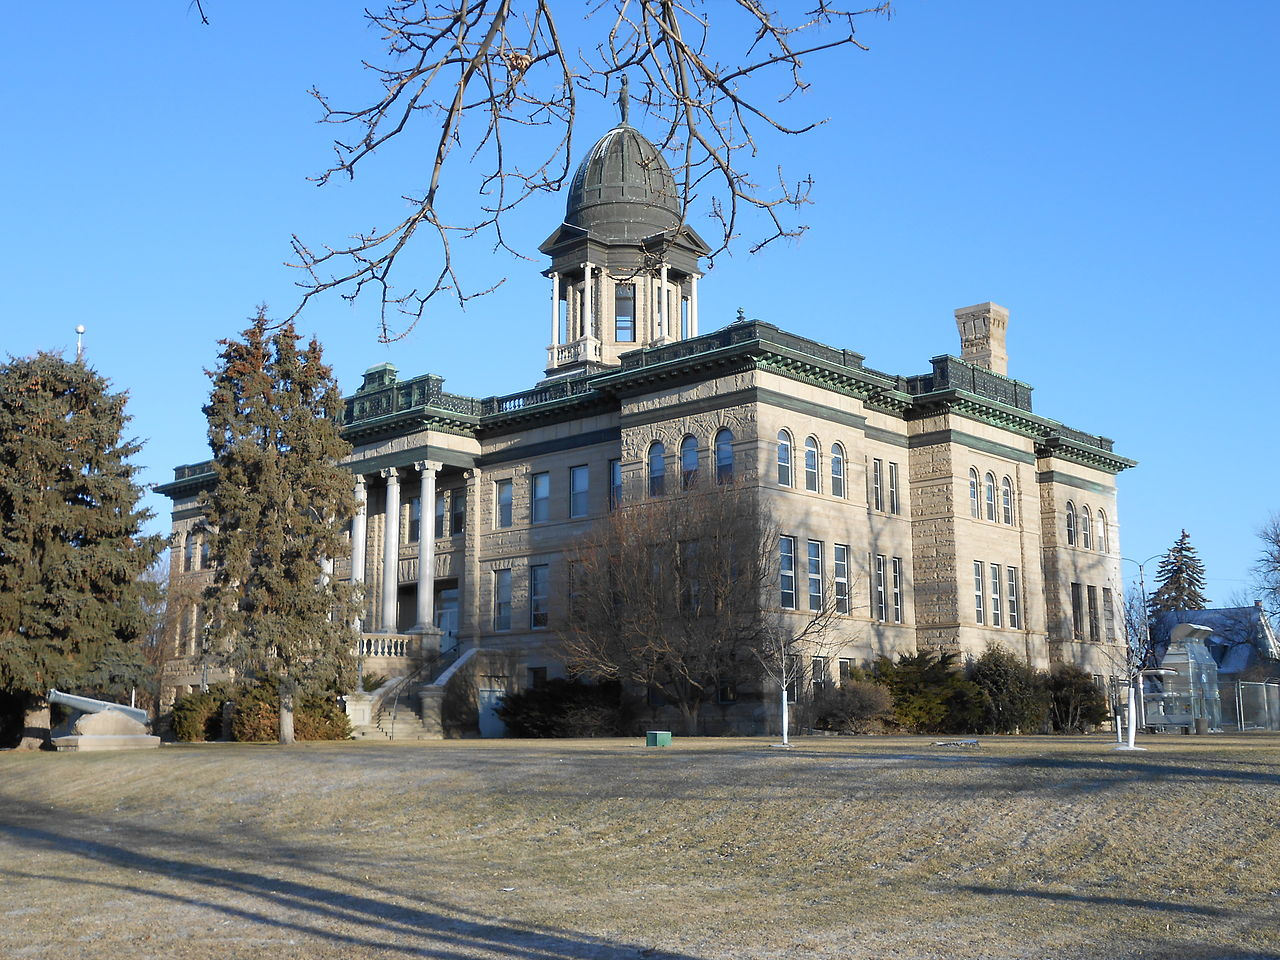 Cascade County Courthouse was built in 1903 and is a striking example of French Renaissance architecture.